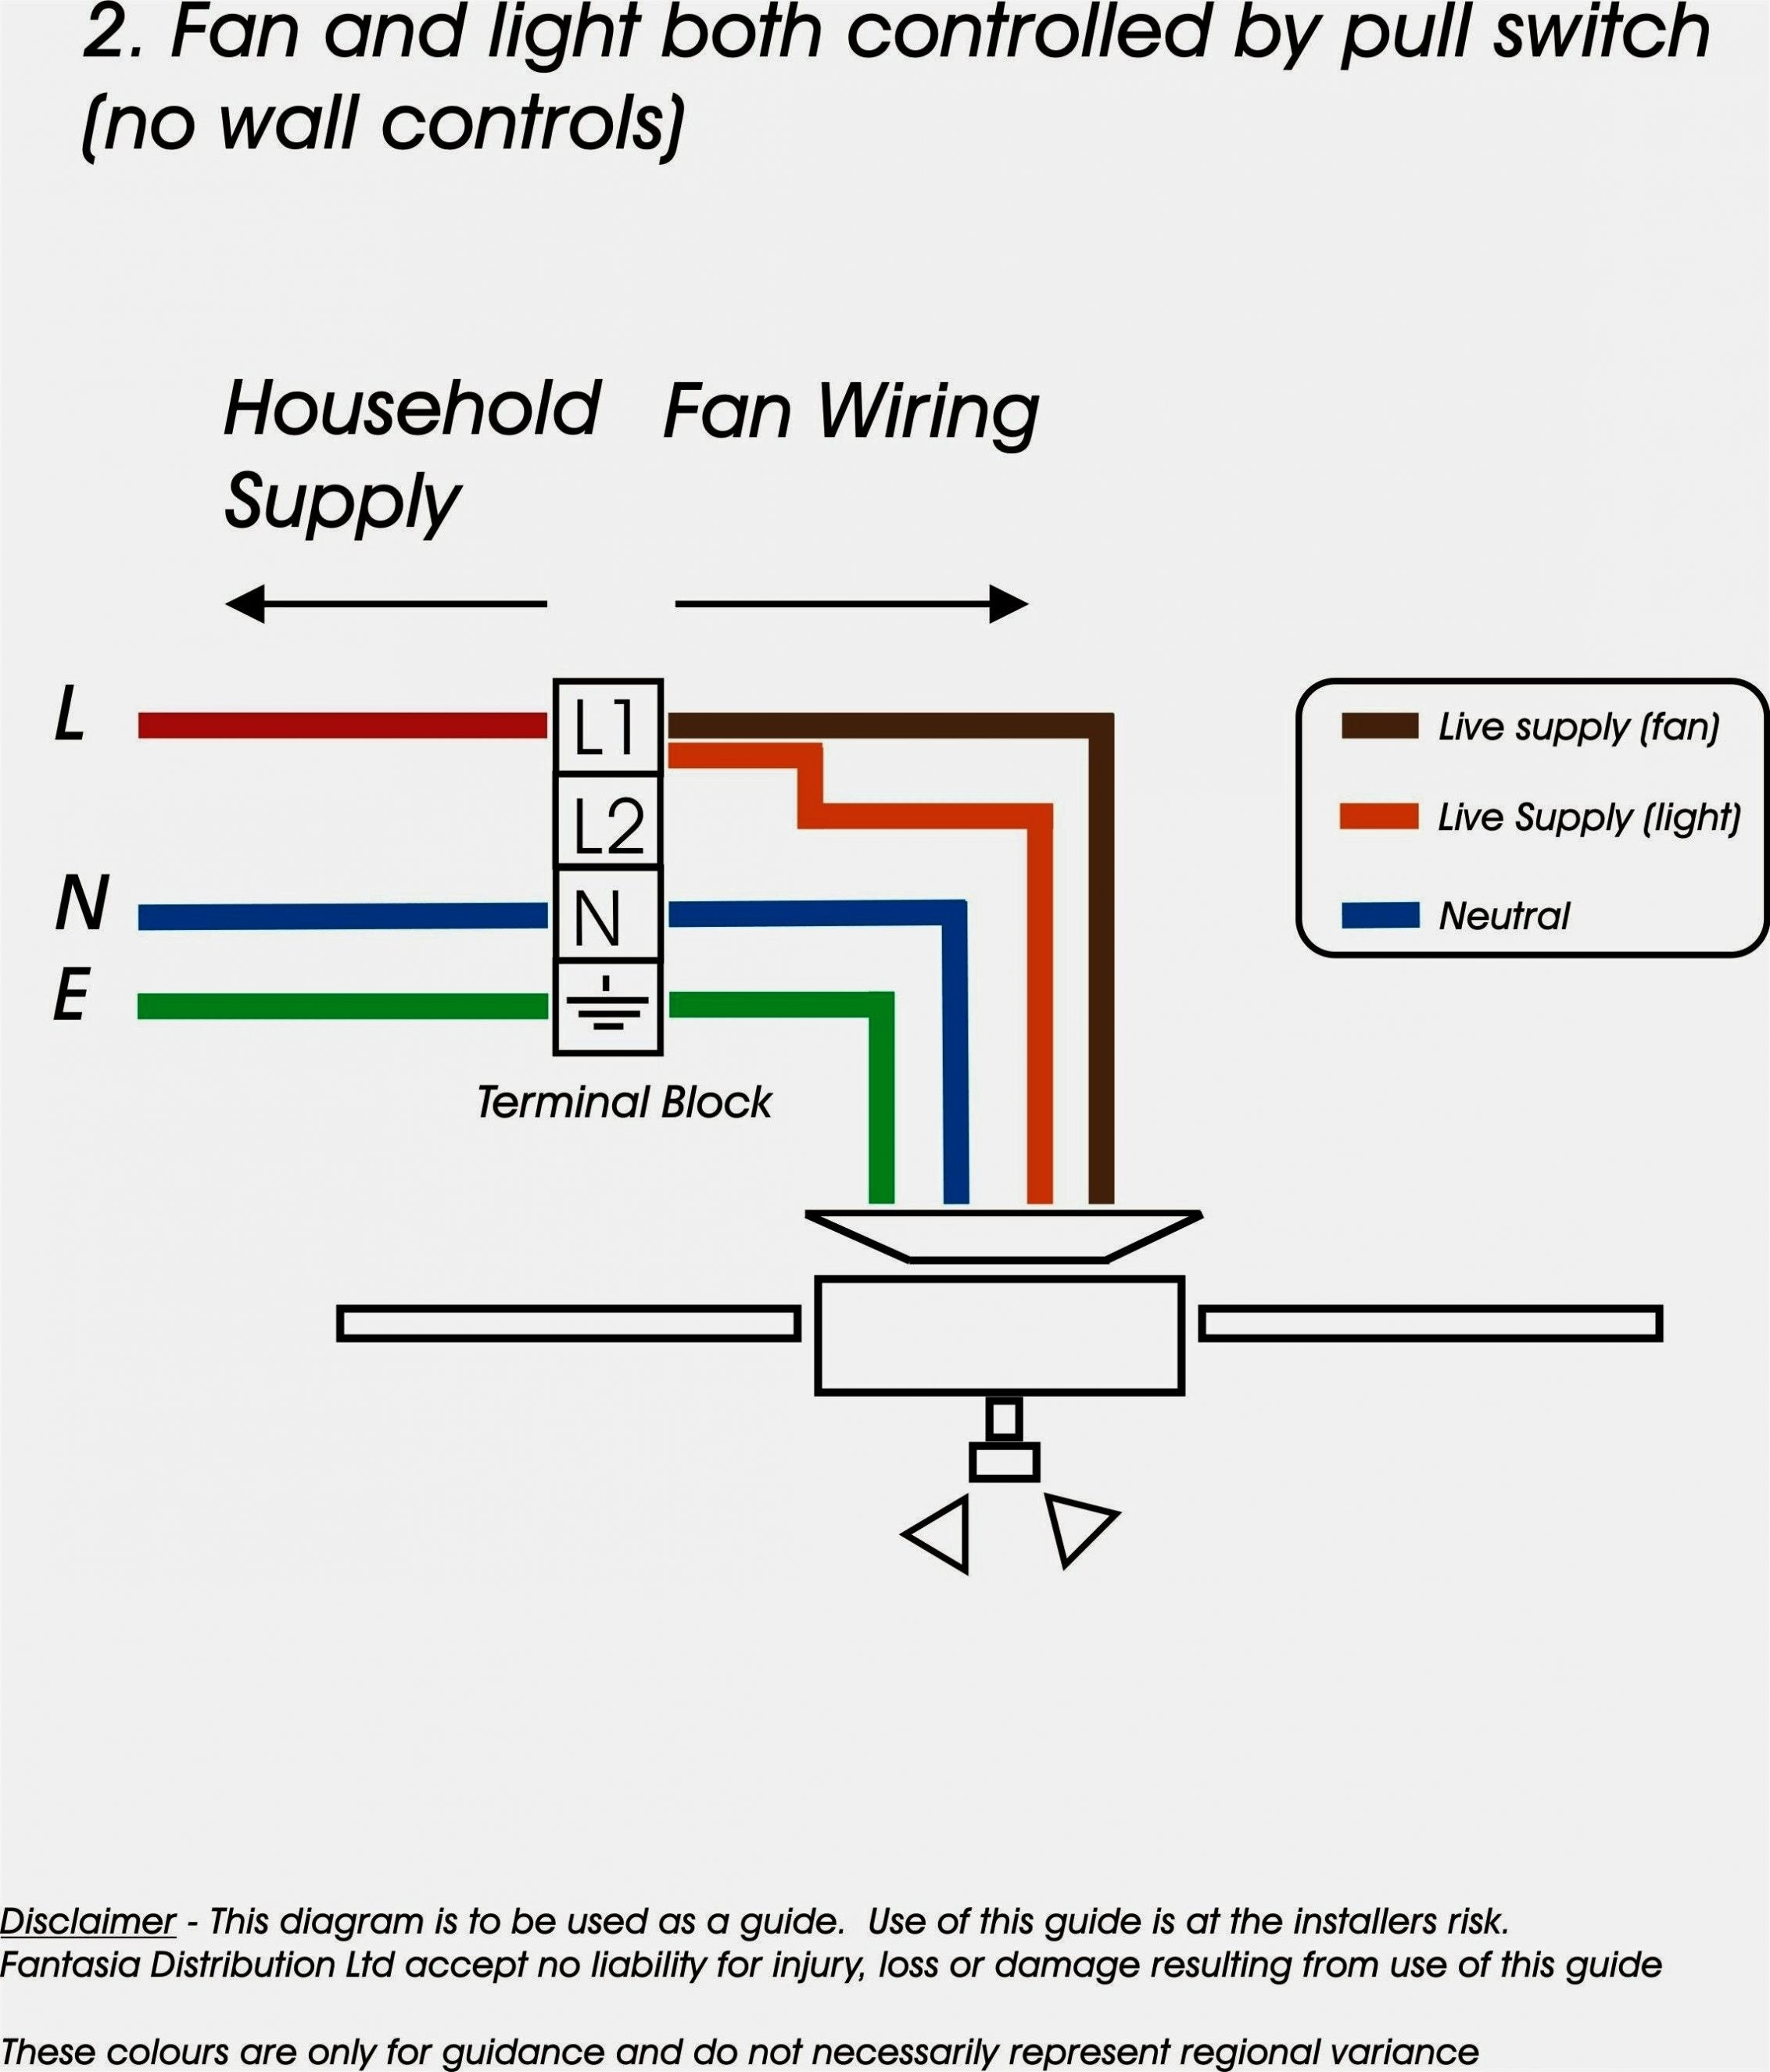 ceiling fan wiring diagram 3 speed Download-ceiling fan wiring diagram 3 speed Collection Ceiling Fan Pull Chain Switch Wiring Diagram Best 20-a